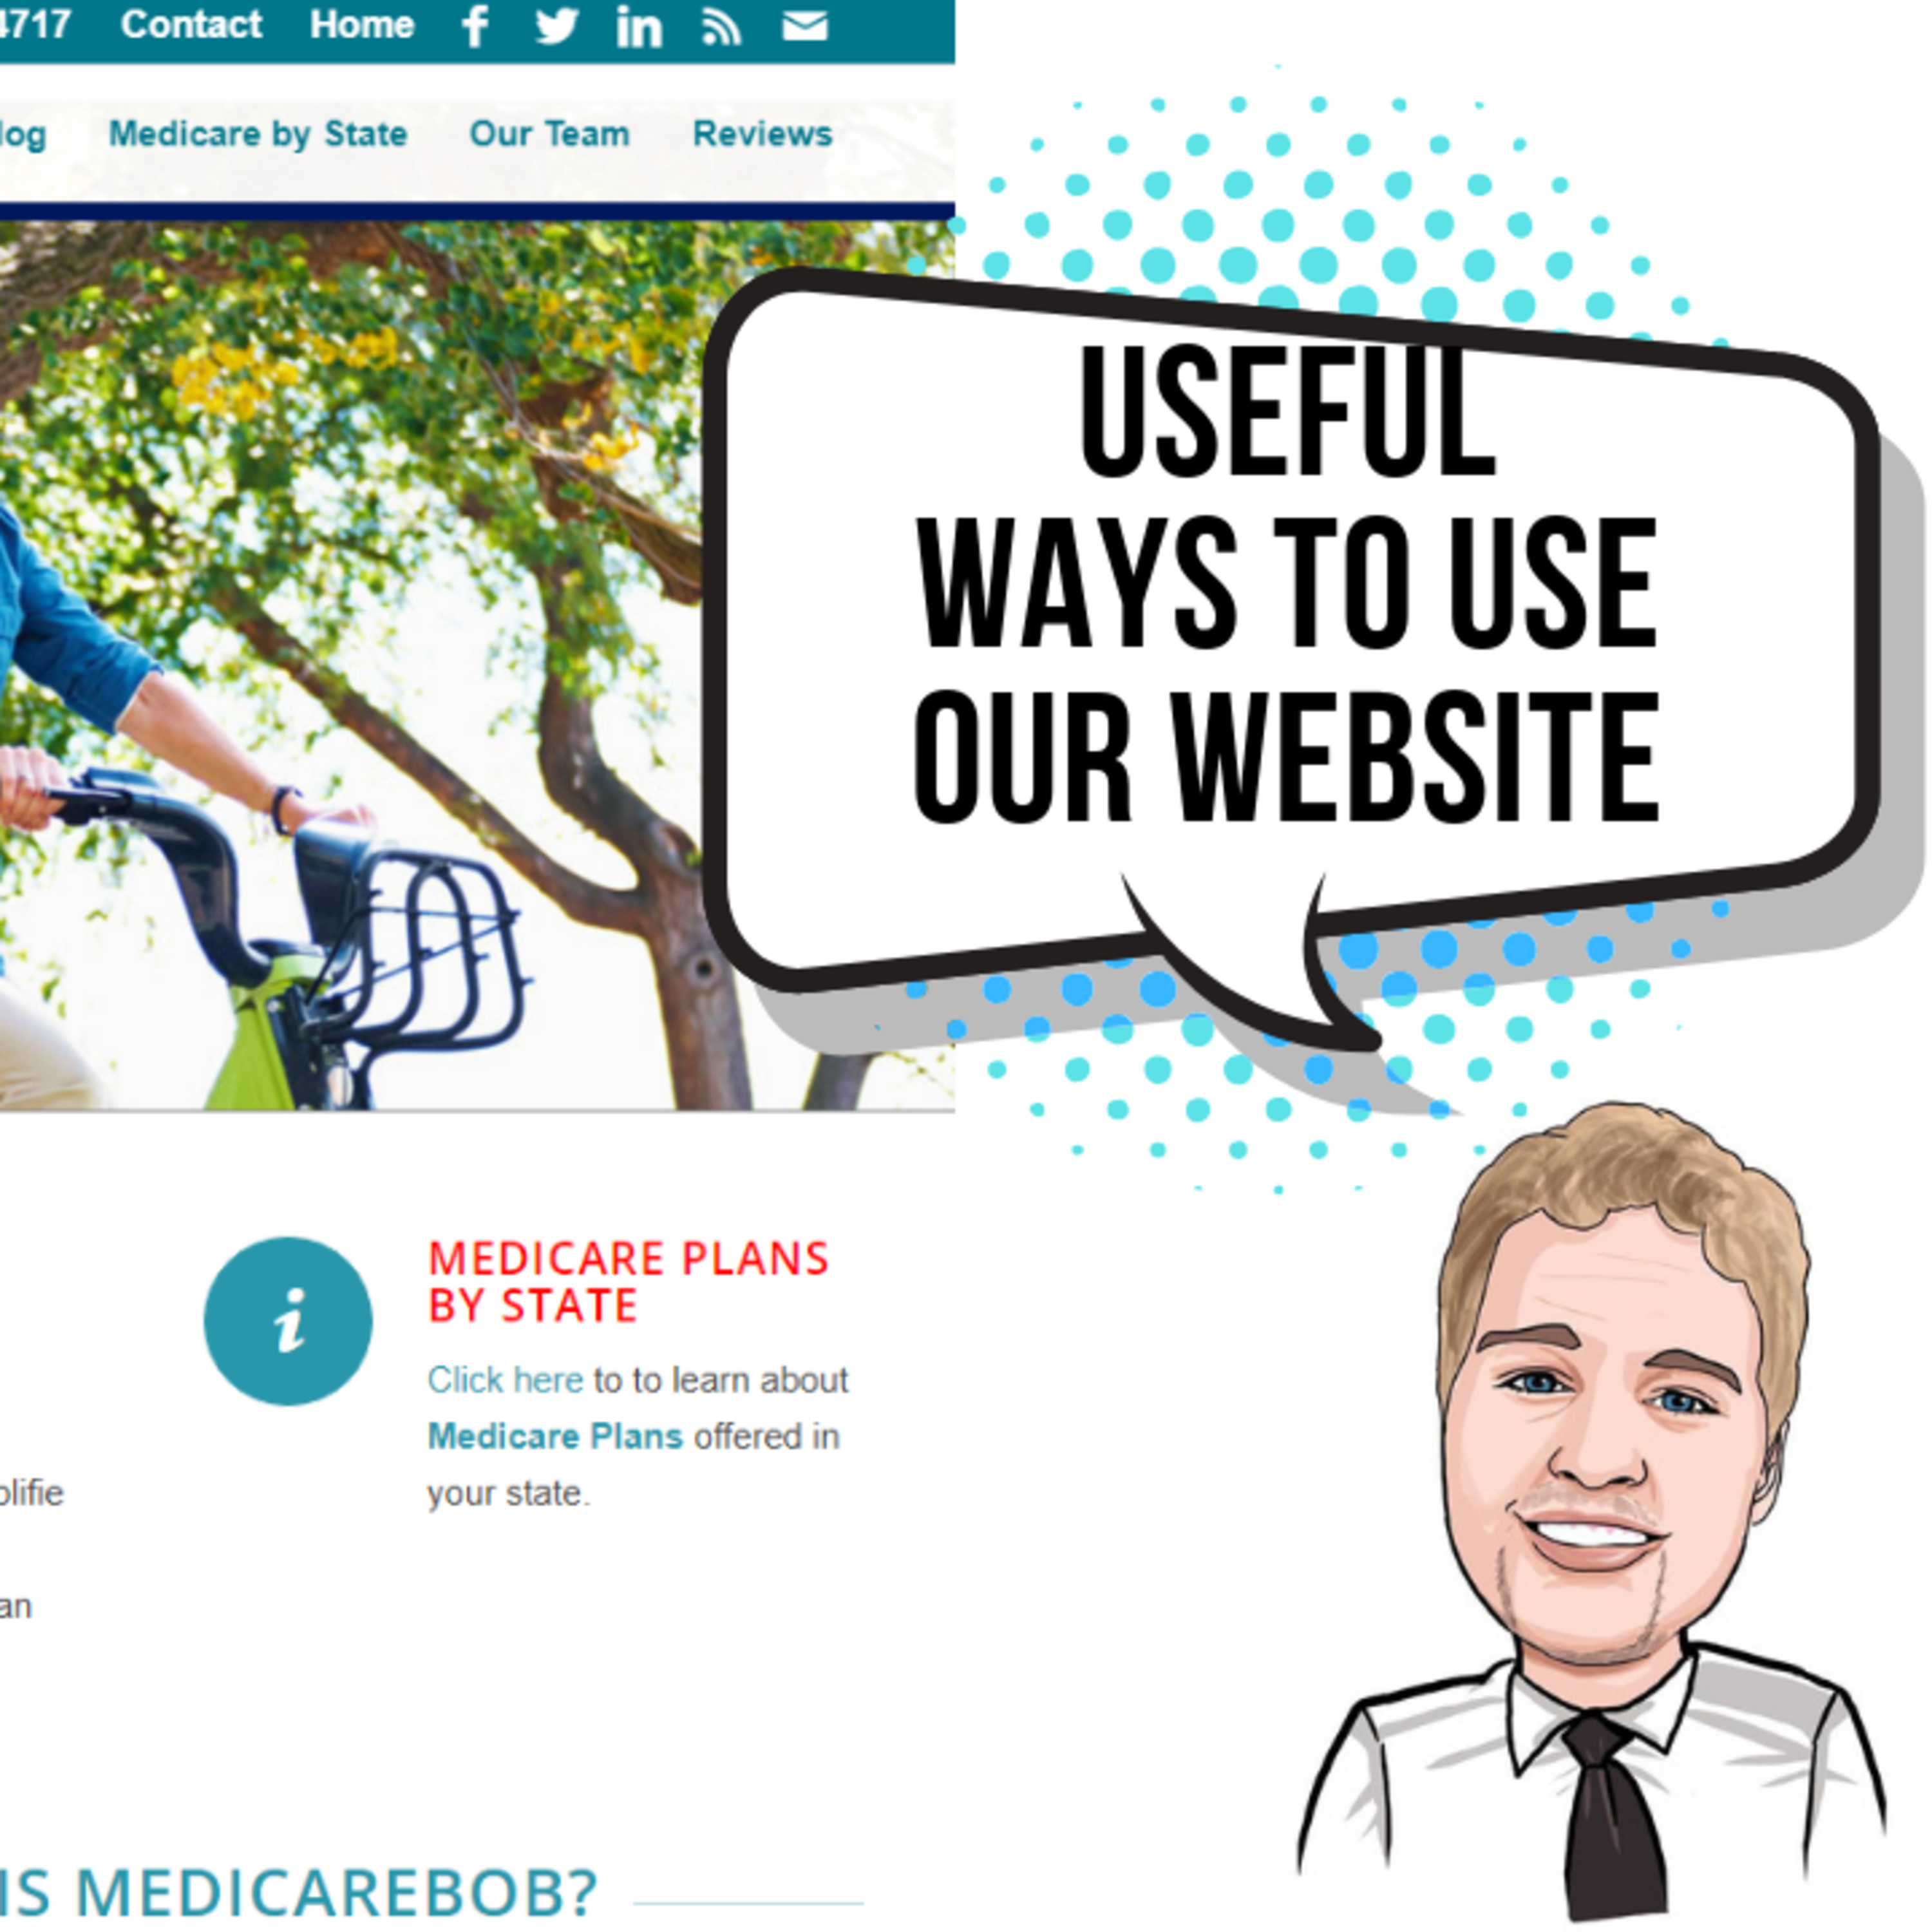 Medicare Help - Senior Healthcare Direct: How to Use our Website